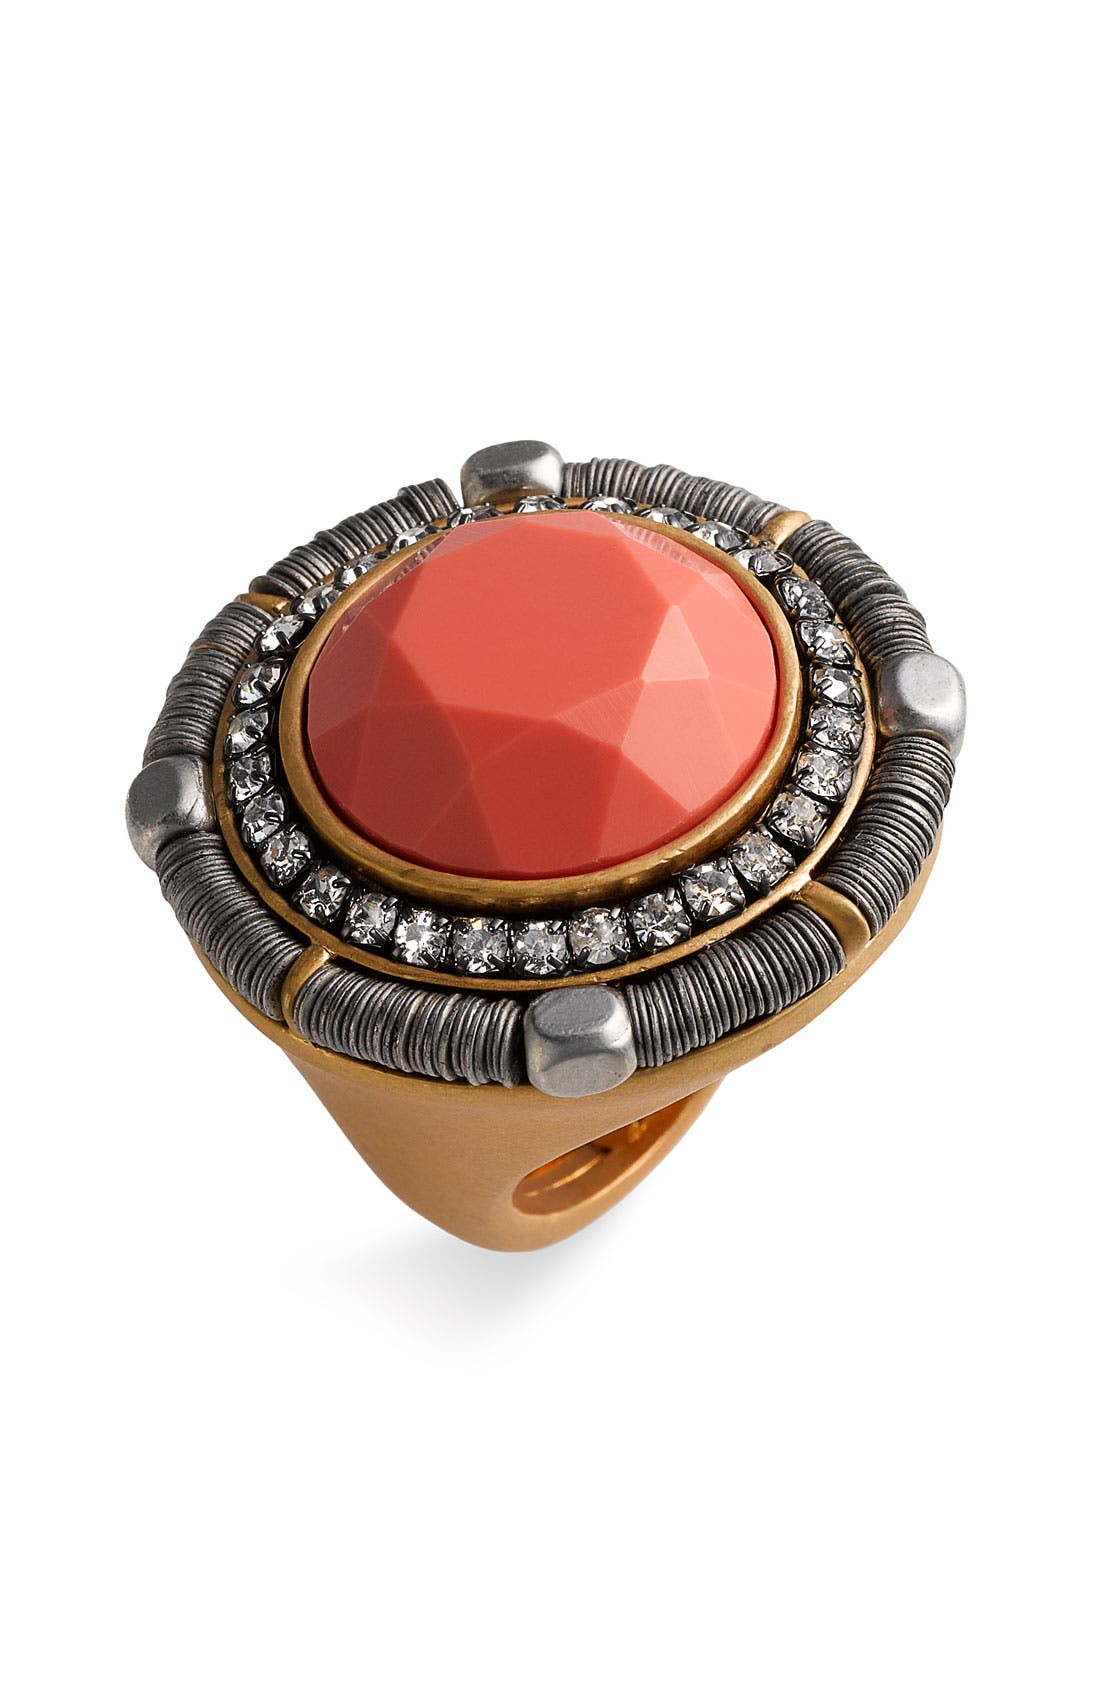 Main Image - Juicy Couture 'Wanderlust' Mixed Media Adjustable Ring